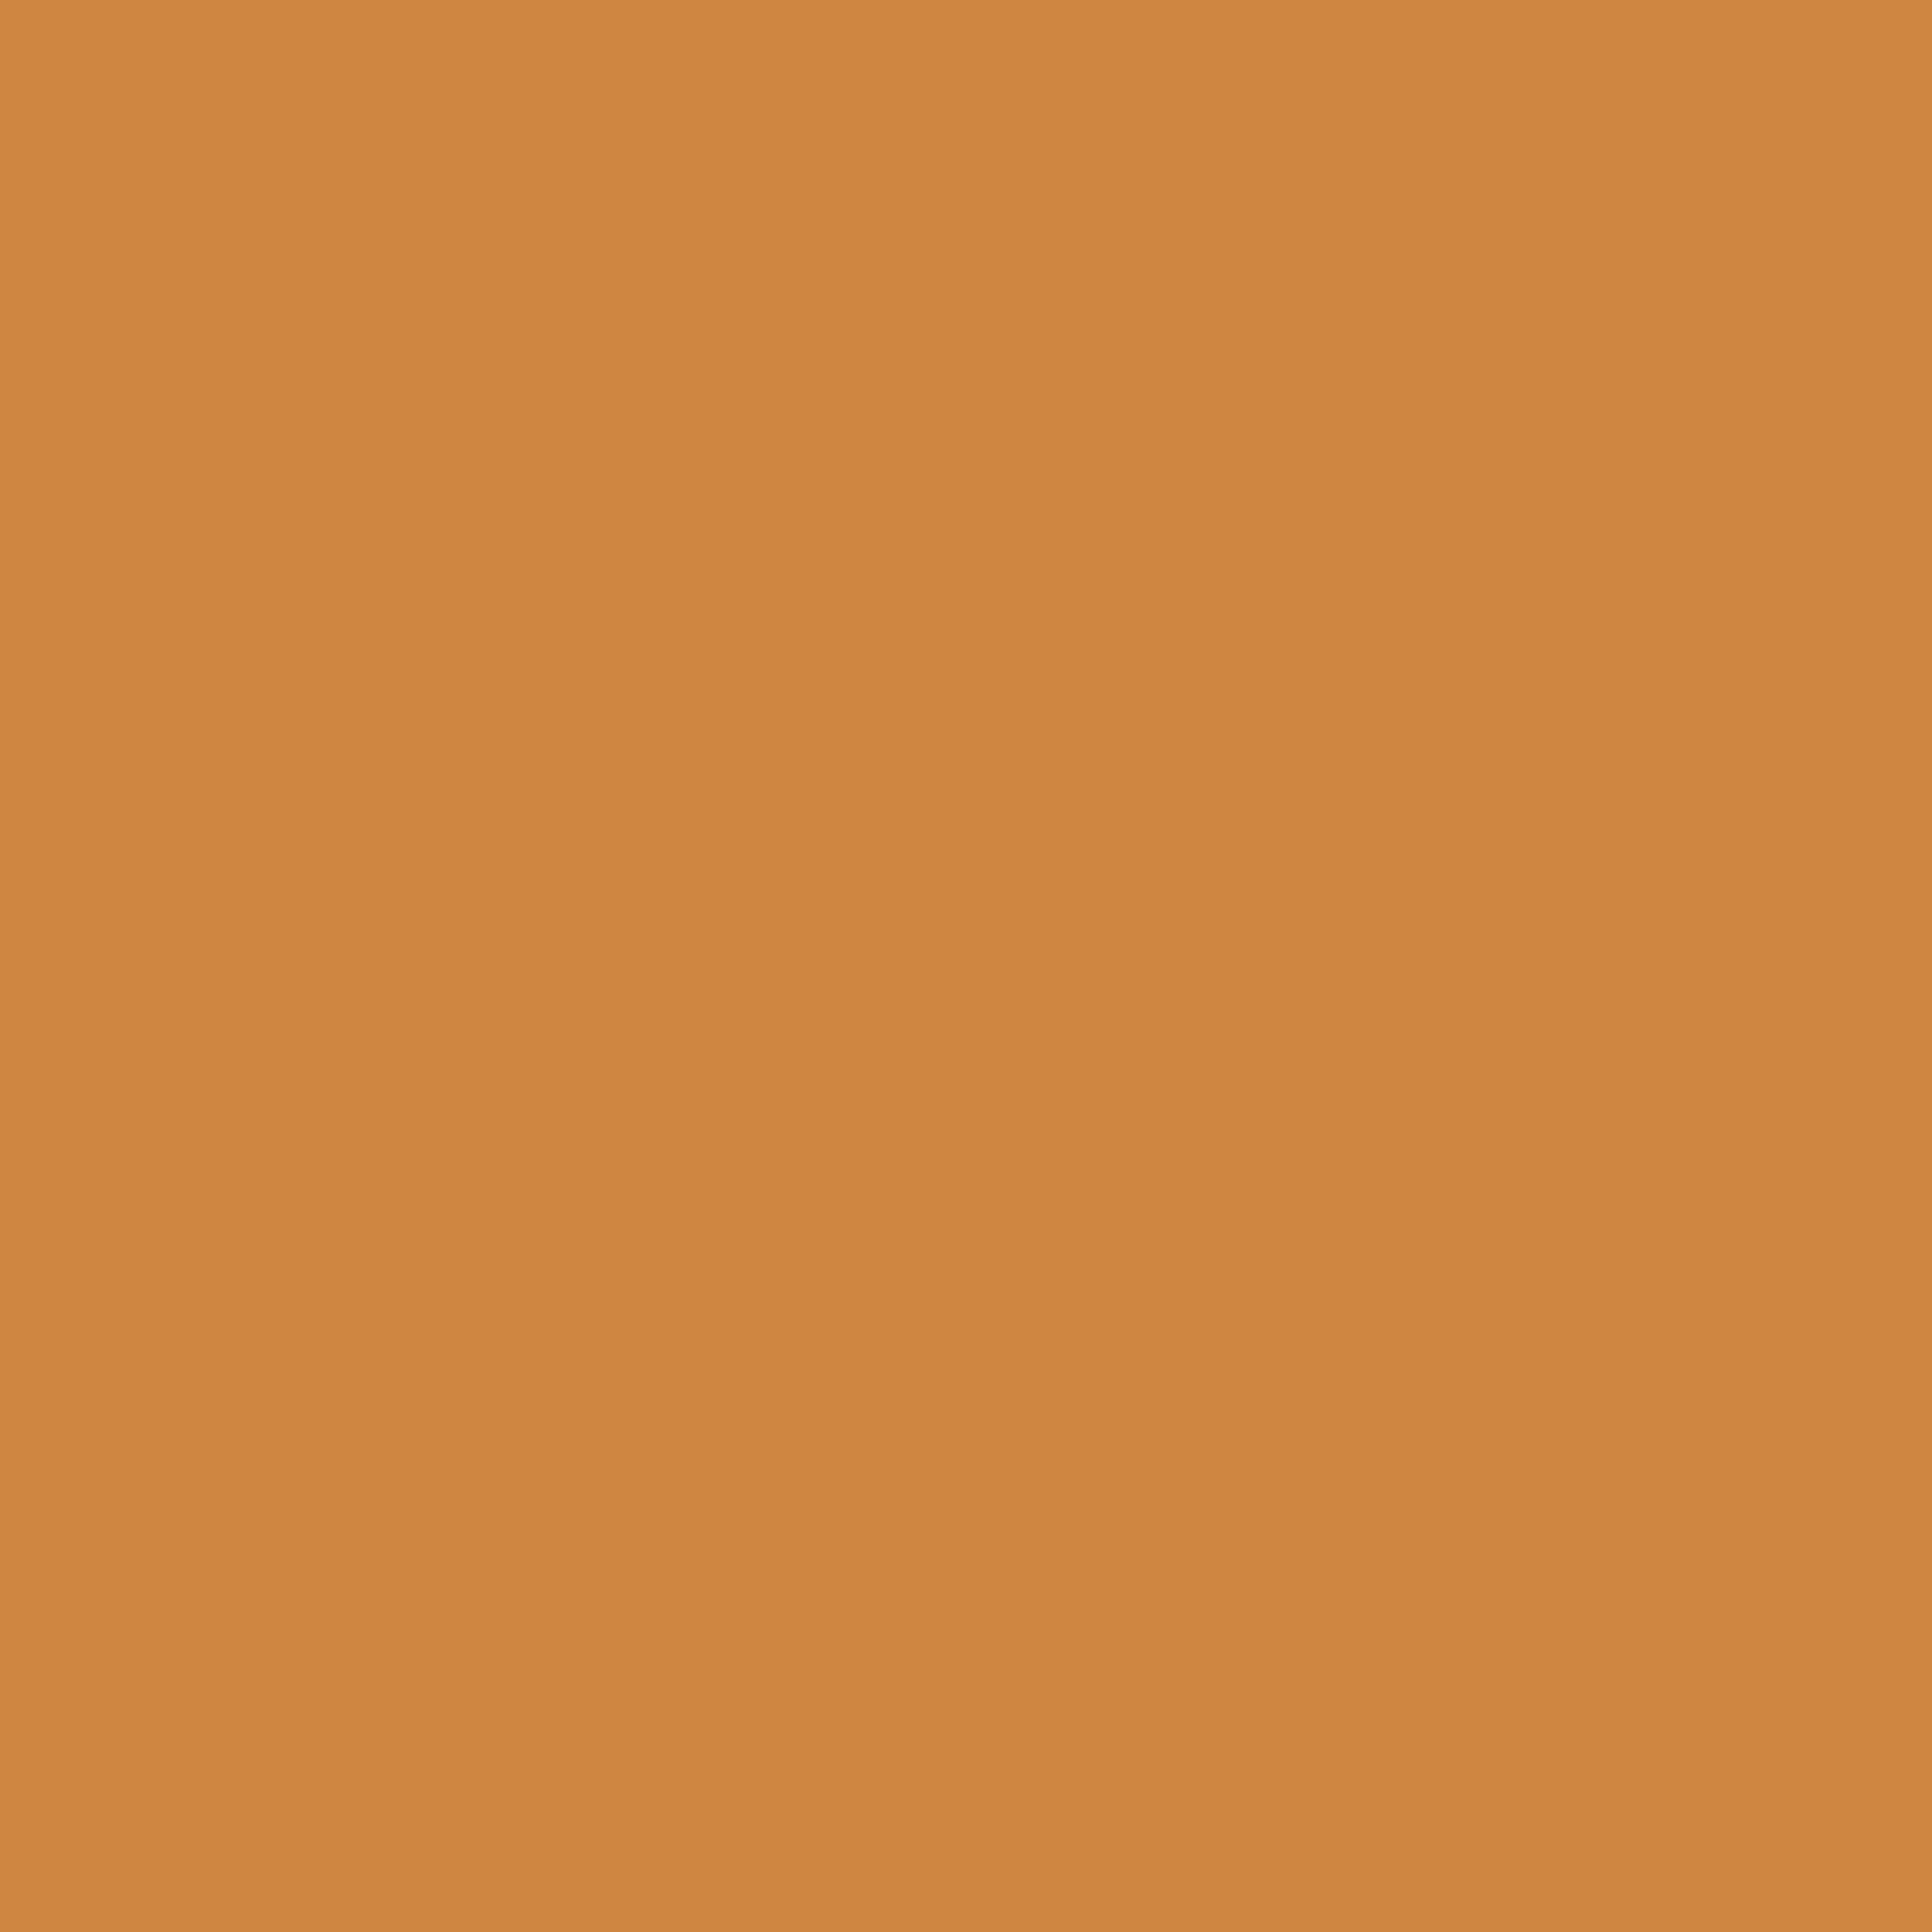 2048x2048 Peru Solid Color Background